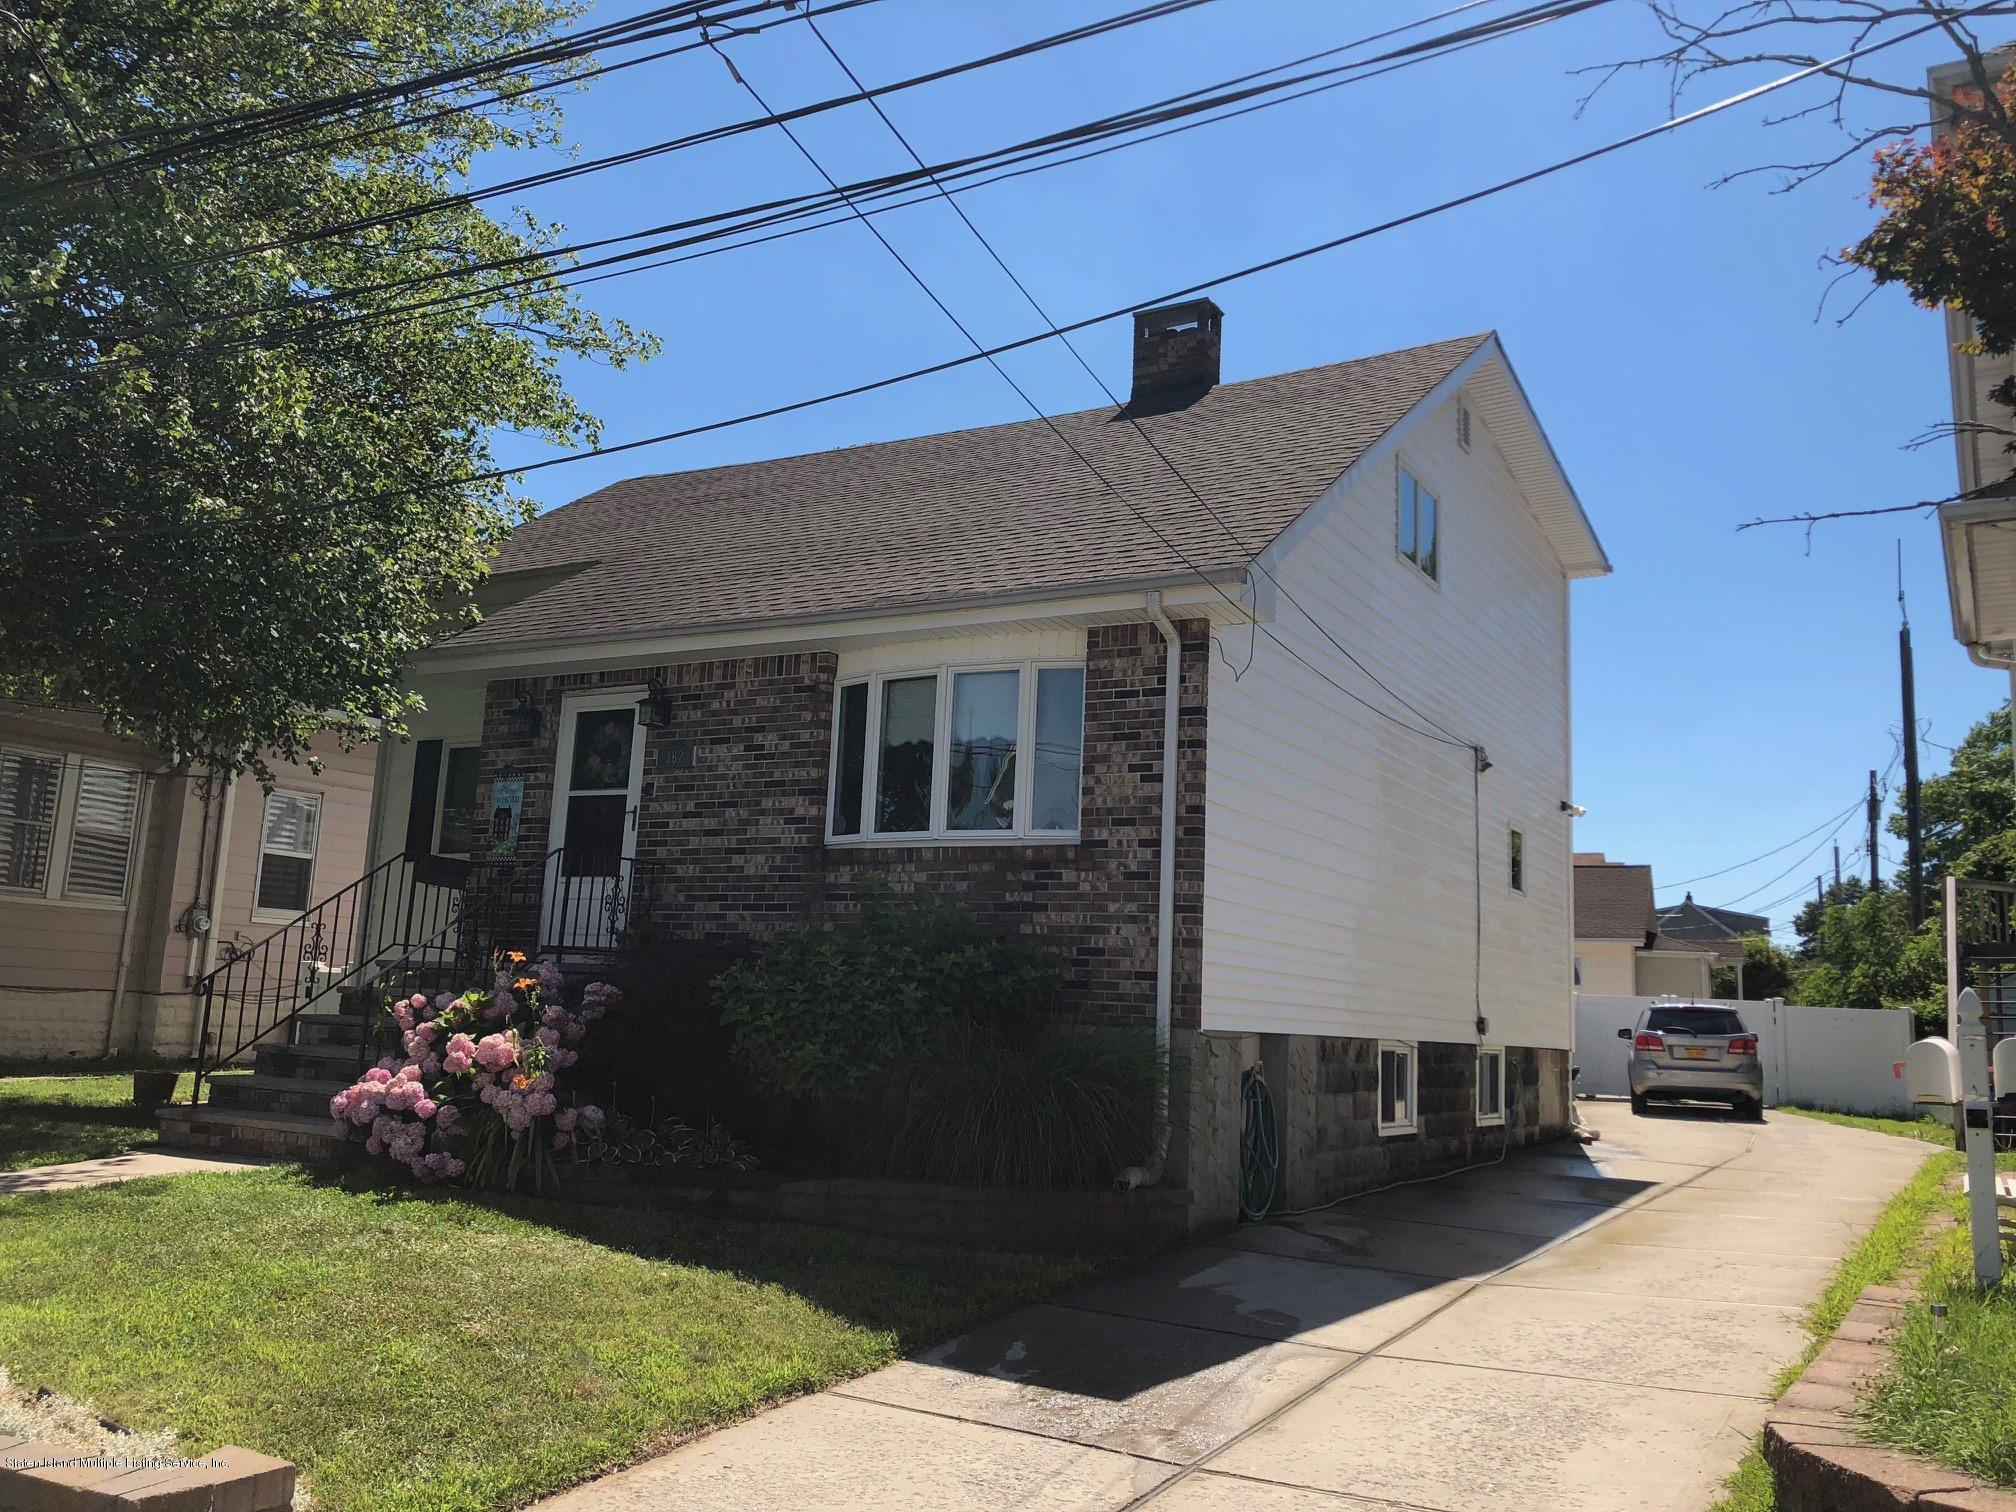 Single Family - Detached 362 Brehaut Avenue  Staten Island, NY 10307, MLS-1120848-2